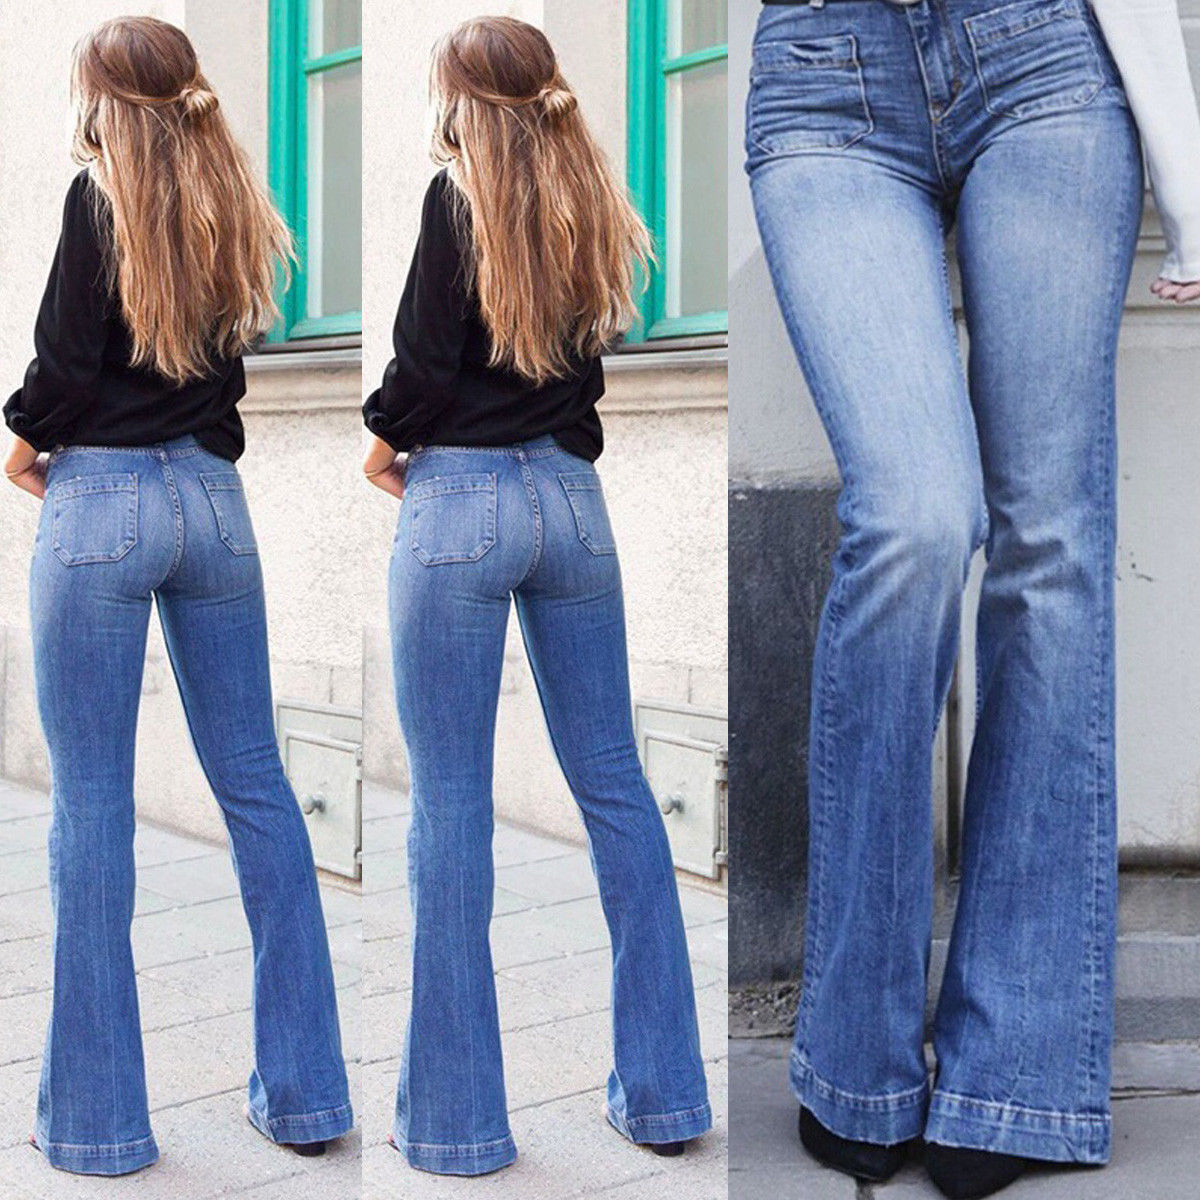 Women Retro High Waist Stretchy Bootcut Jeans Denim Skinny Flared Pants Ladies Bell Bottom Casual Trouser